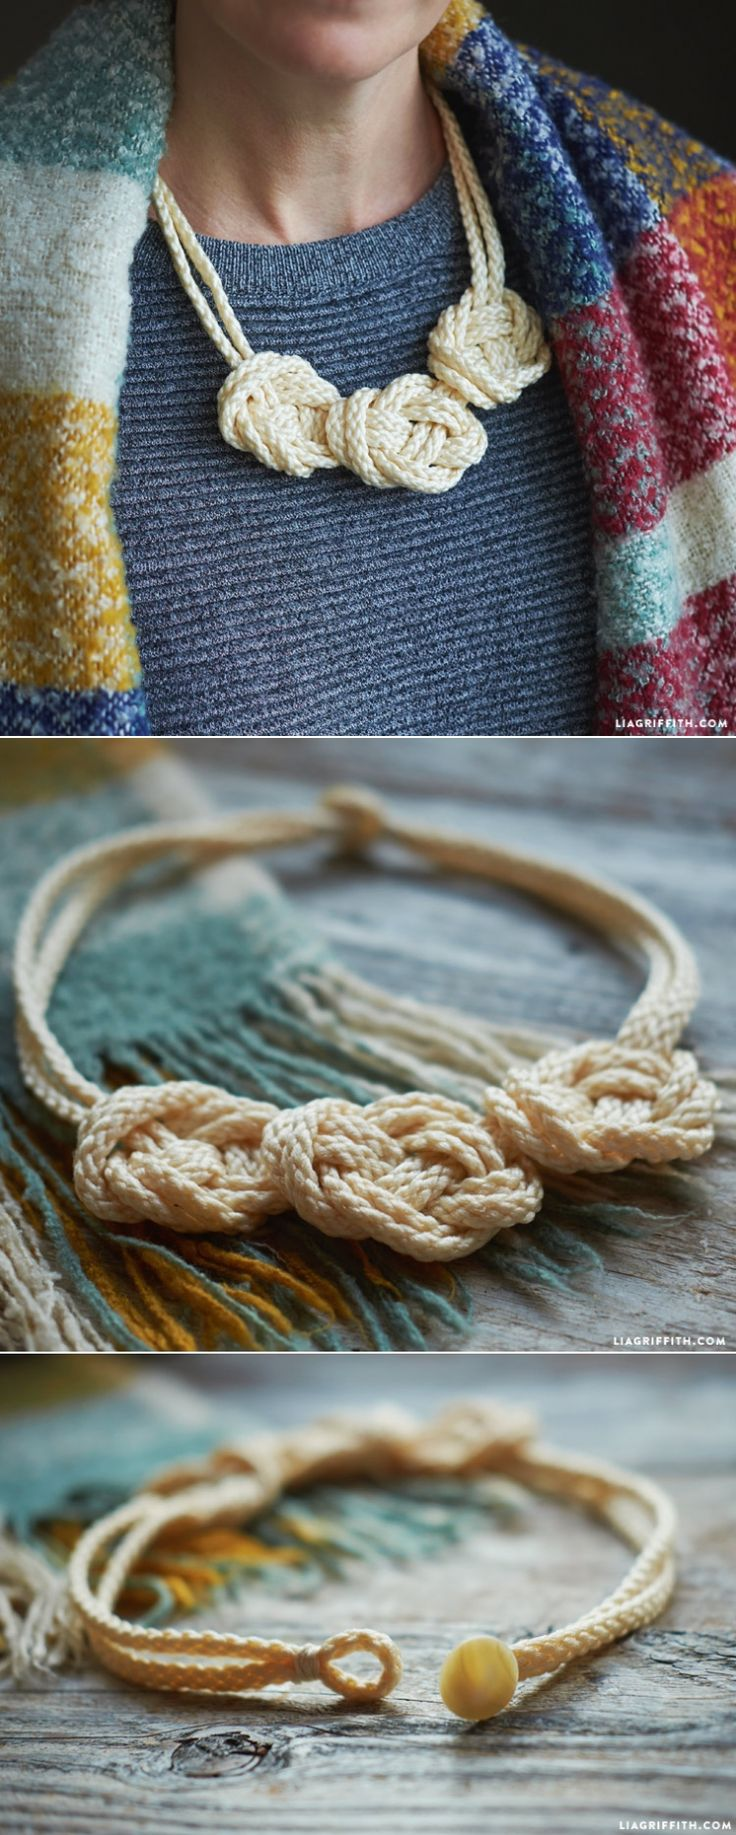 Love the look of knots? Create a unique macramé knot necklace with this step-by-step tutorial, courtesy of Lia Griffith. With only a few materials and steps, you can easily create this necklace in many colors to go with any outfit.